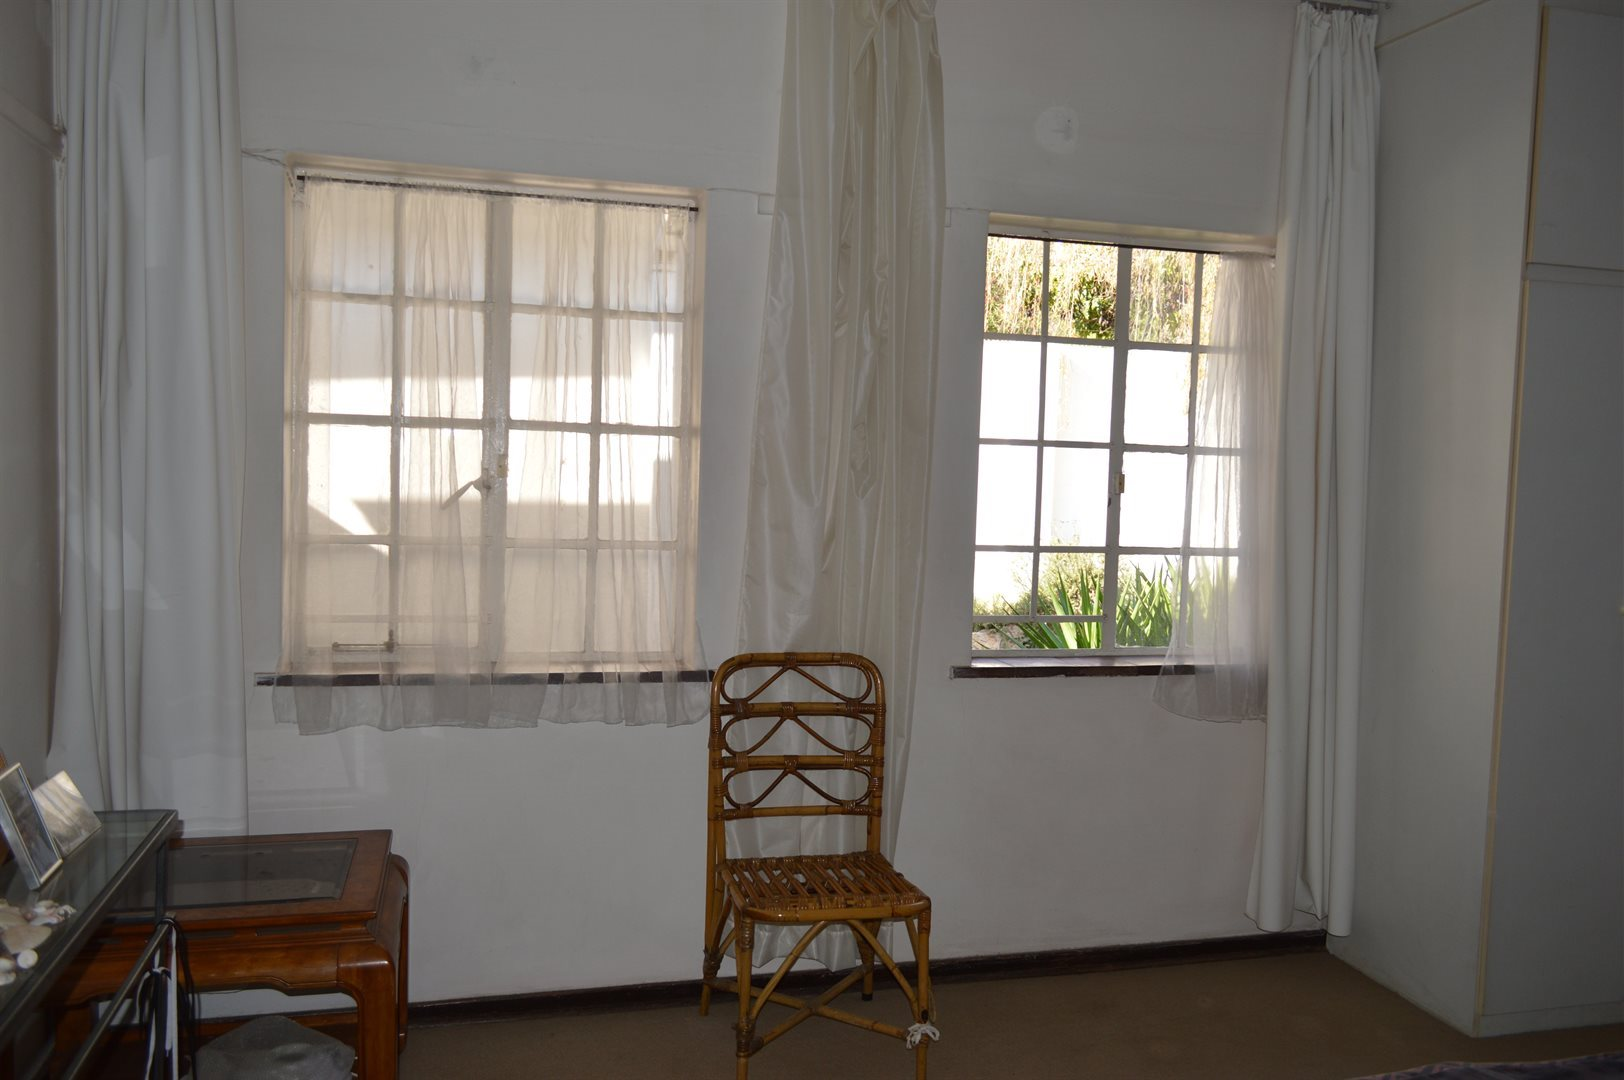 Highlands North property for sale. Ref No: 13649352. Picture no 14